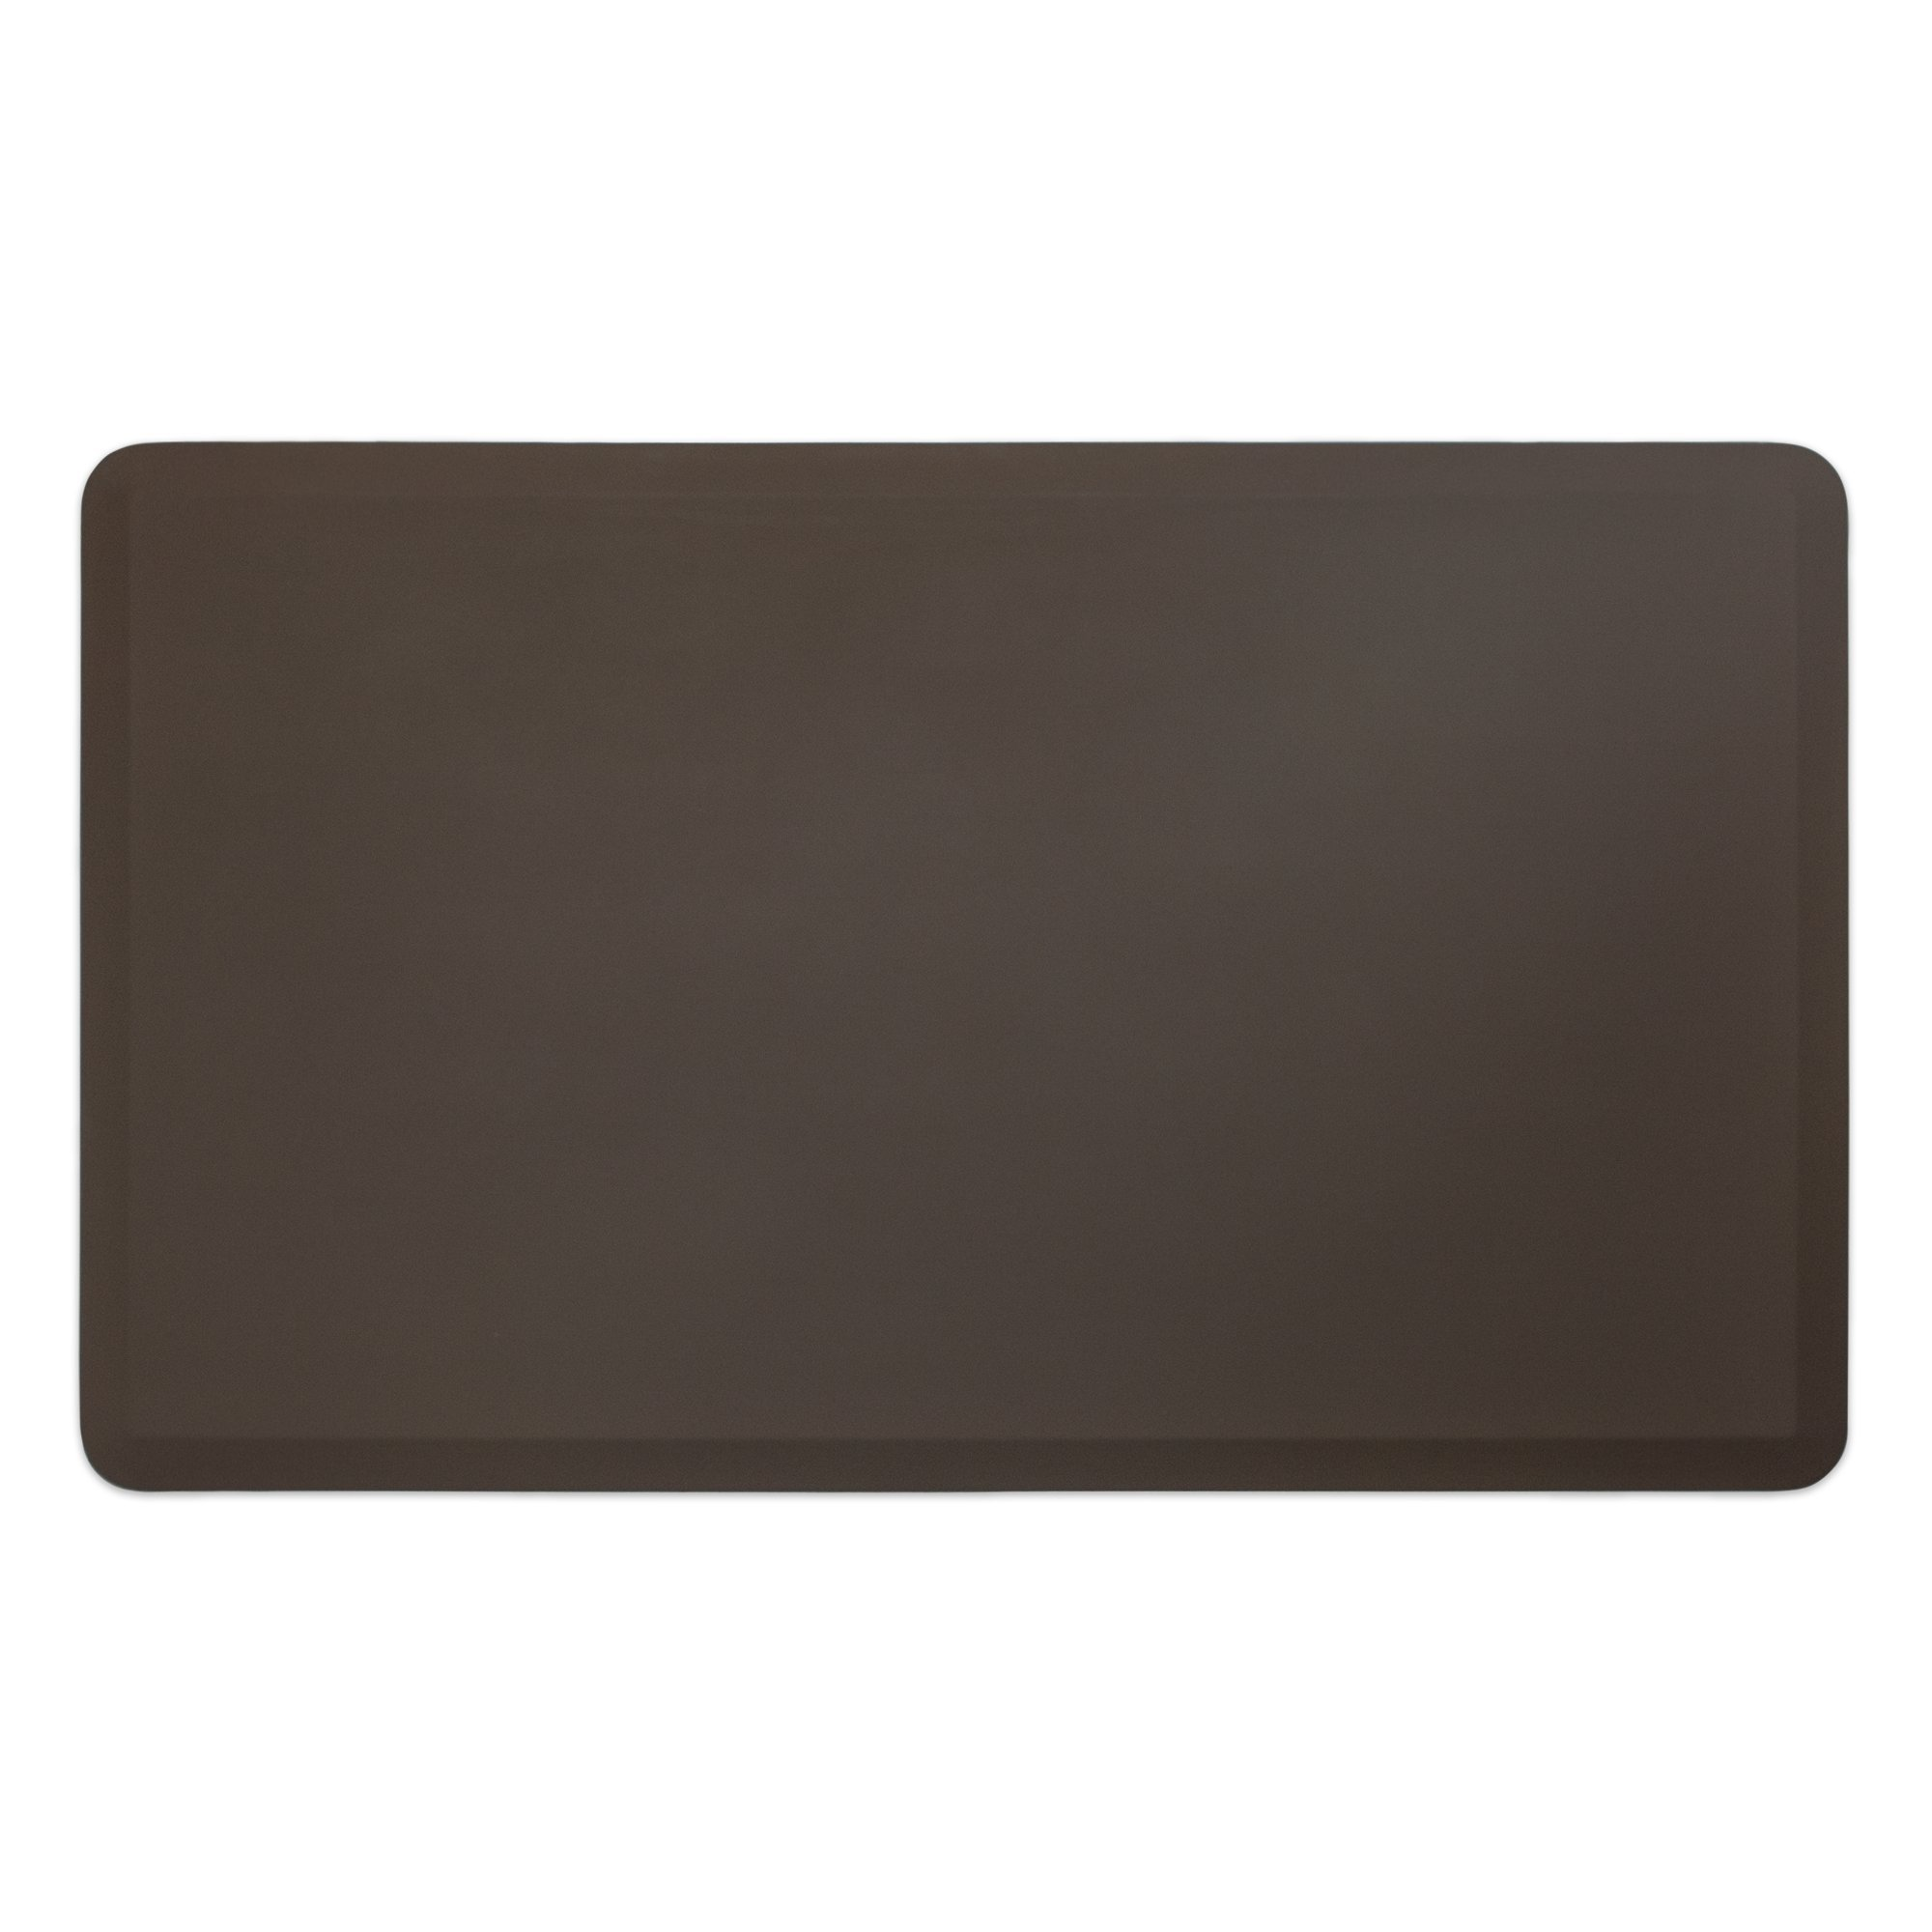 "NewLife by GelPro Professional Grade Anti-Fatigue Kitchen & Office Comfort Mat, 36x60, Earth ¾"" Bio-Foam Mat with non-slip bottom for health & wellness"